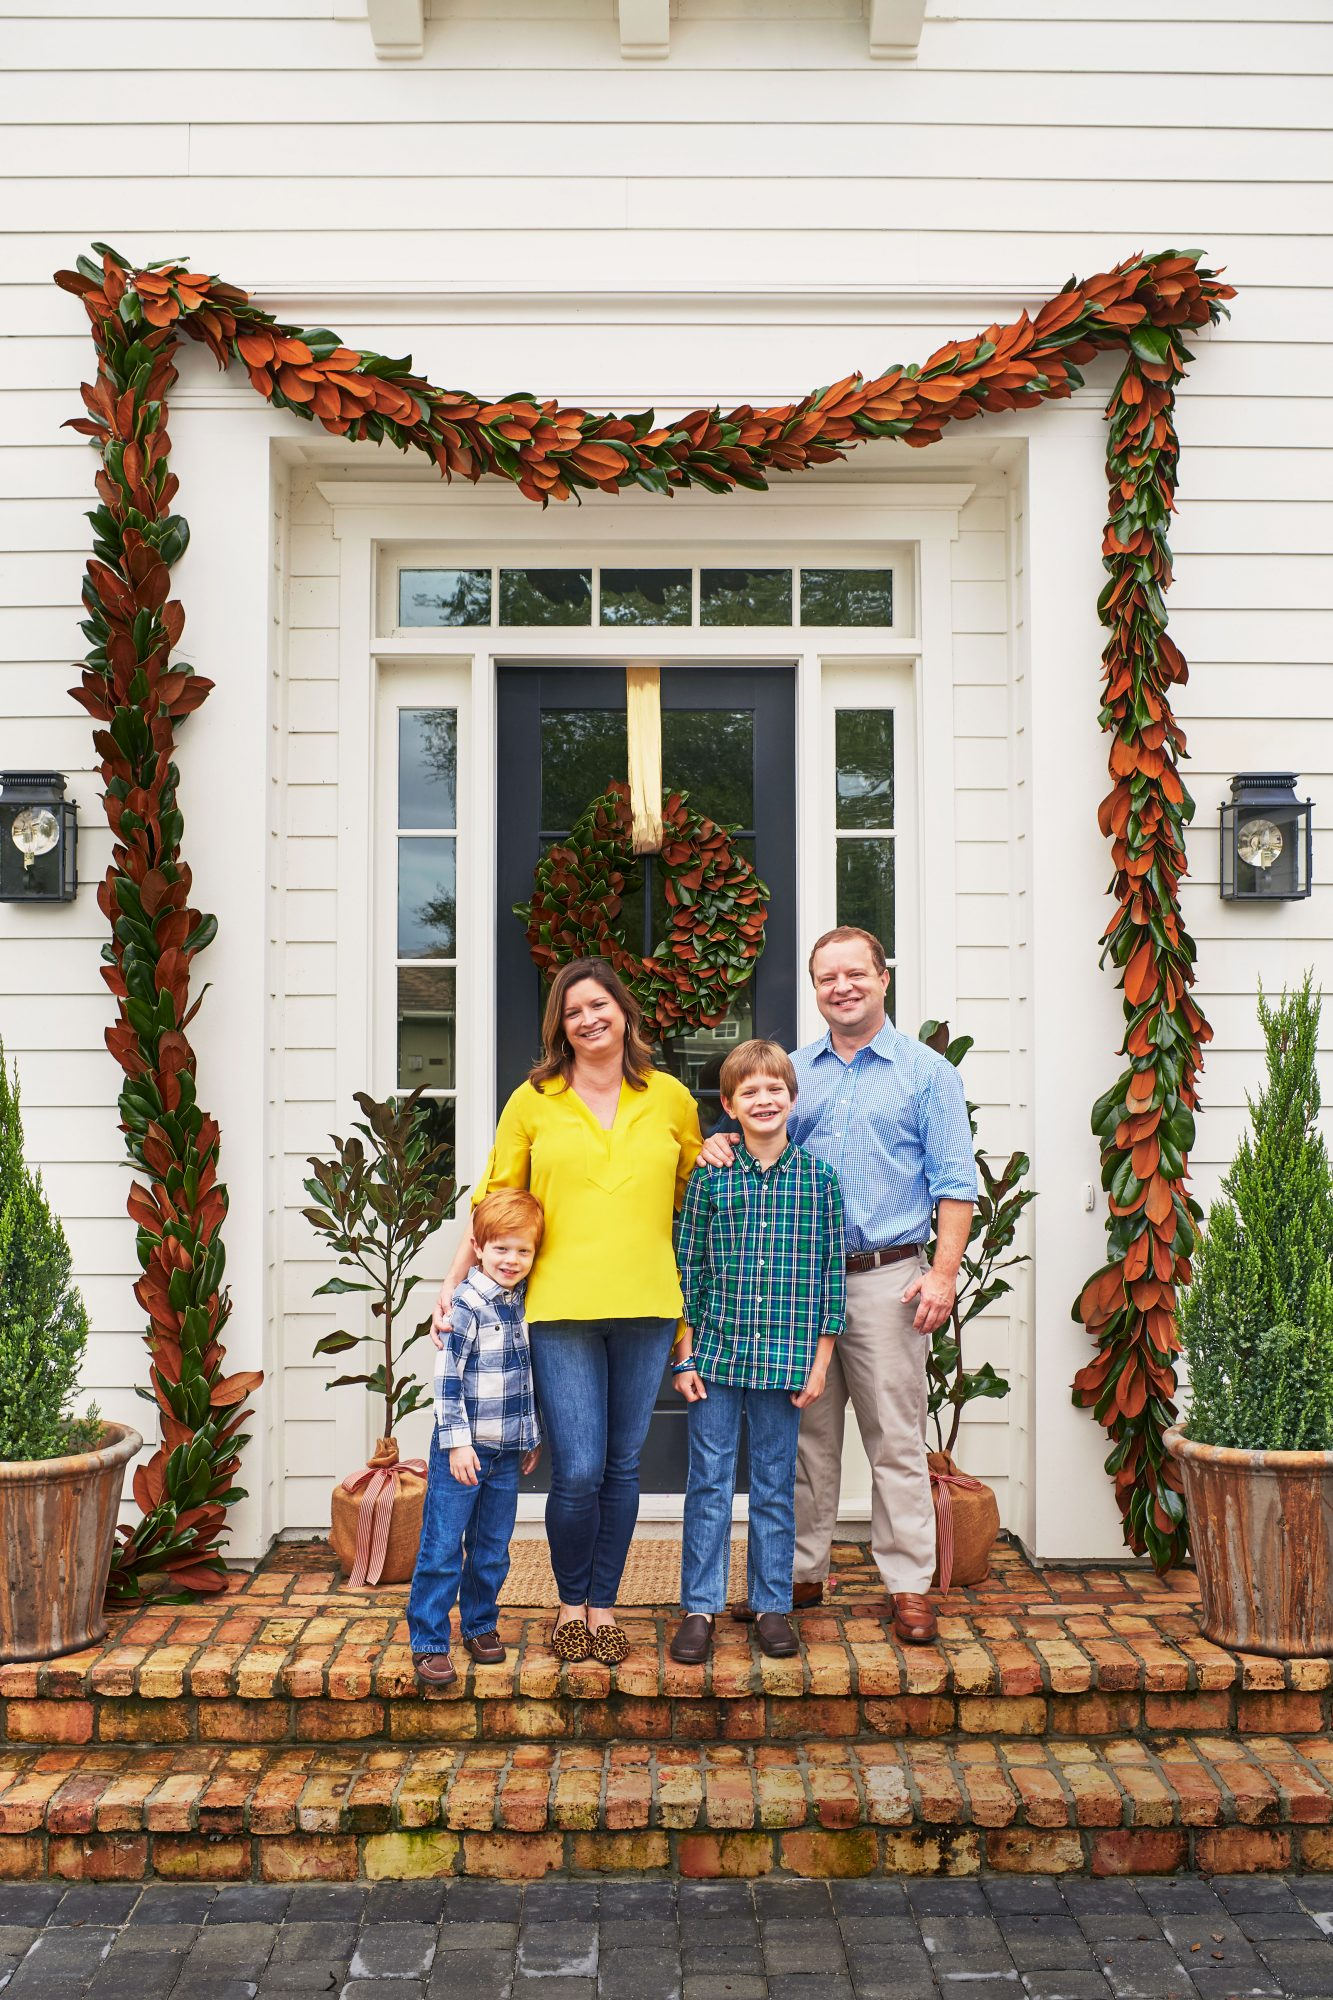 Andrew Howard with Family in front of house decorated for Christmas